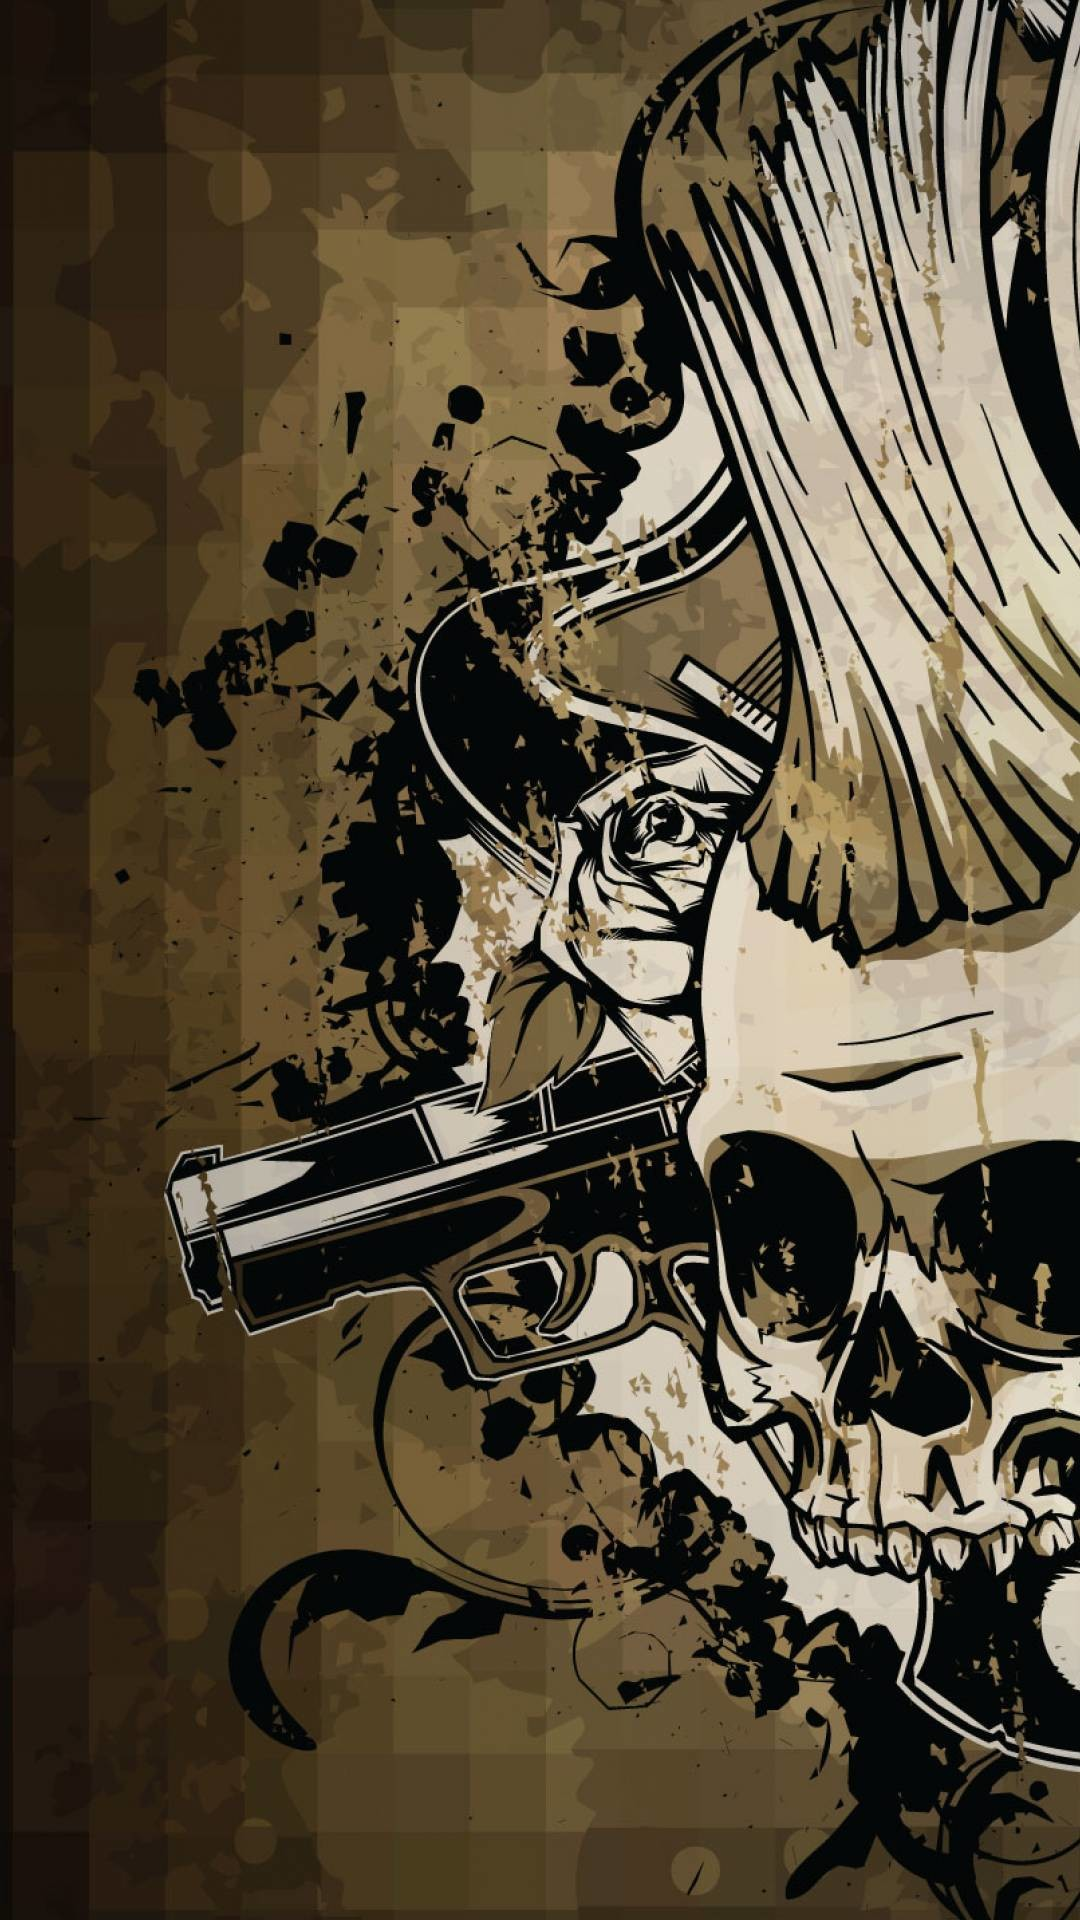 HTC HTC One Wallpapers: Brown Skulls n Guns Android Wallpapers